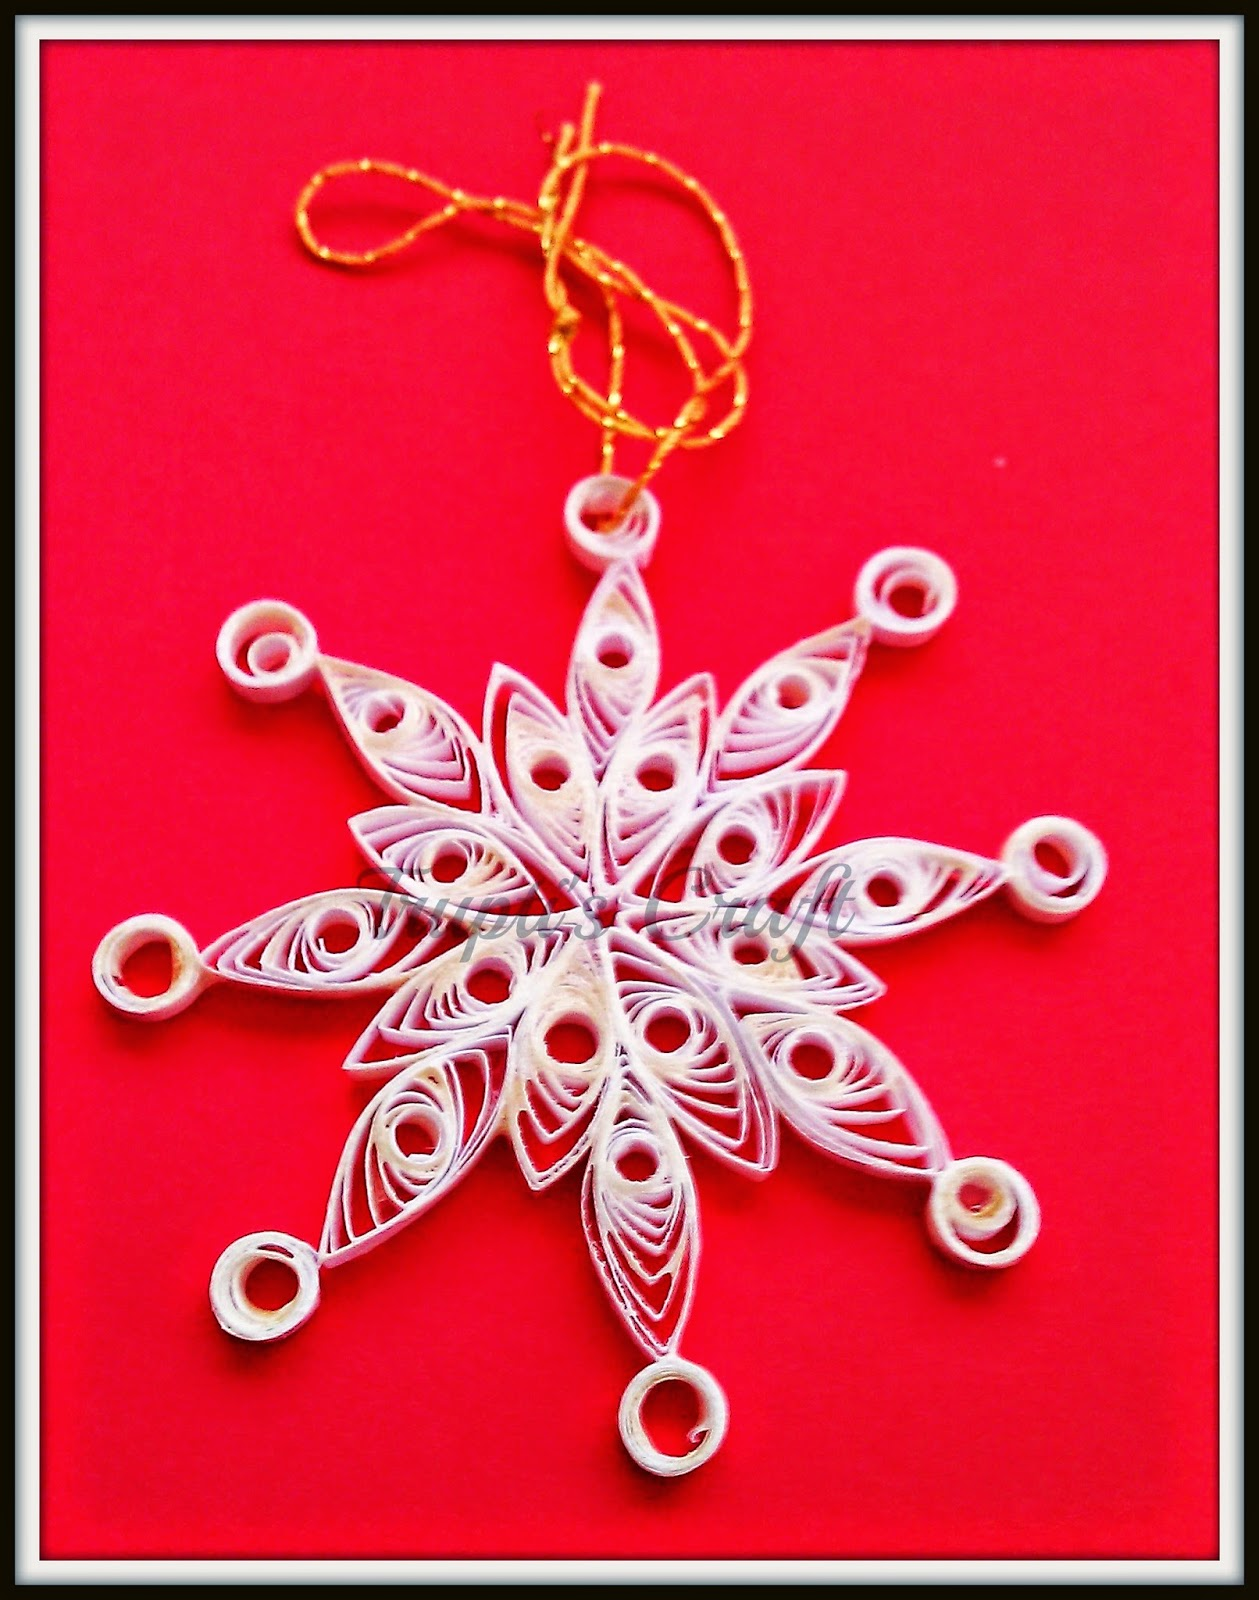 Trupti's Craft: Paper Quilling Christmas Ornaments - photo#27